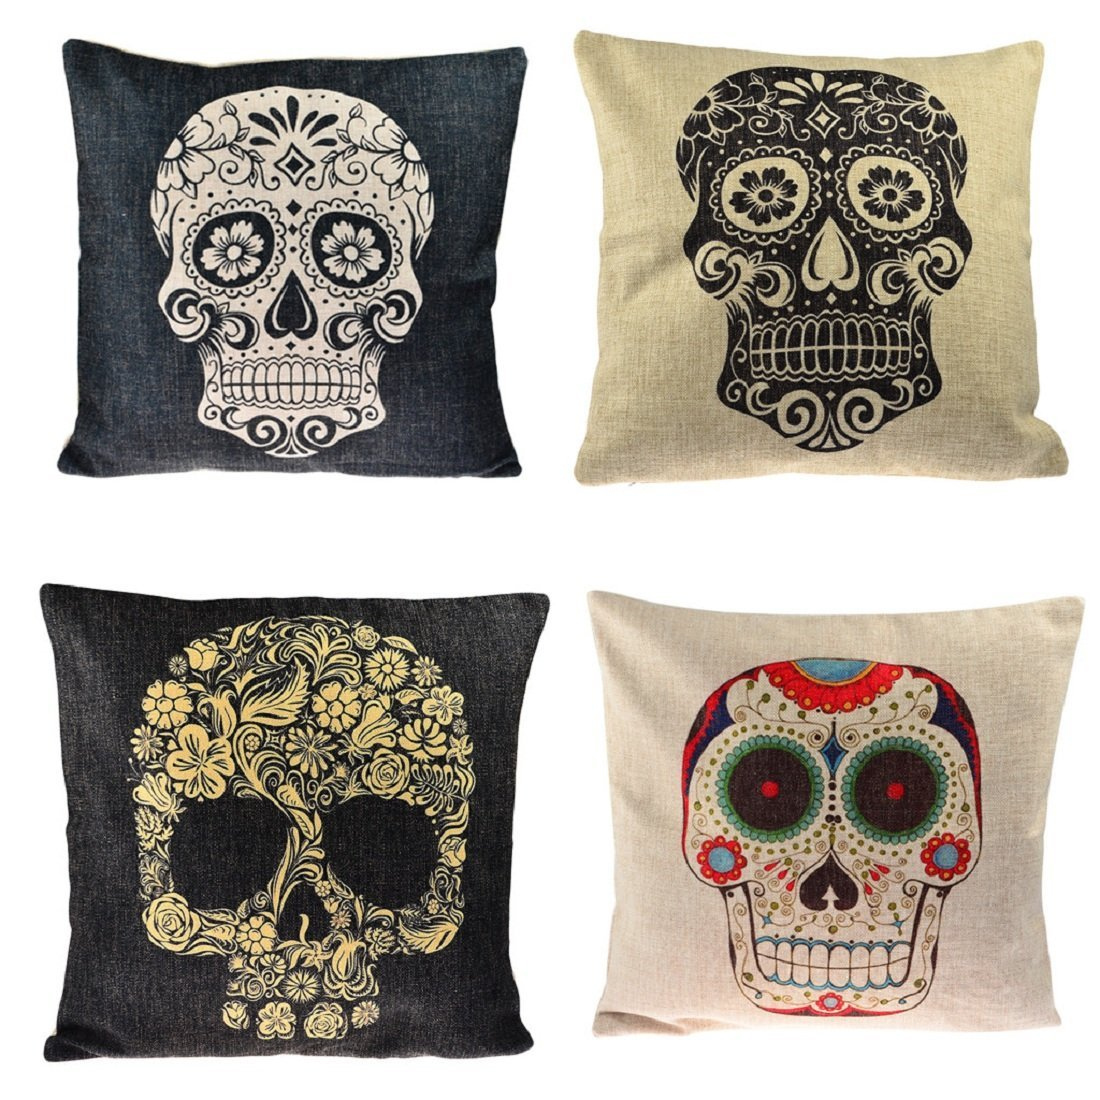 Throw Pillow Covers,YIFAN 4Pcs Mexican Day of the Dead Sugar Skull Cotton Linen Square Shaped Decorative Sofa Chair Couch Pillowcase Pillowslip 43*43cm